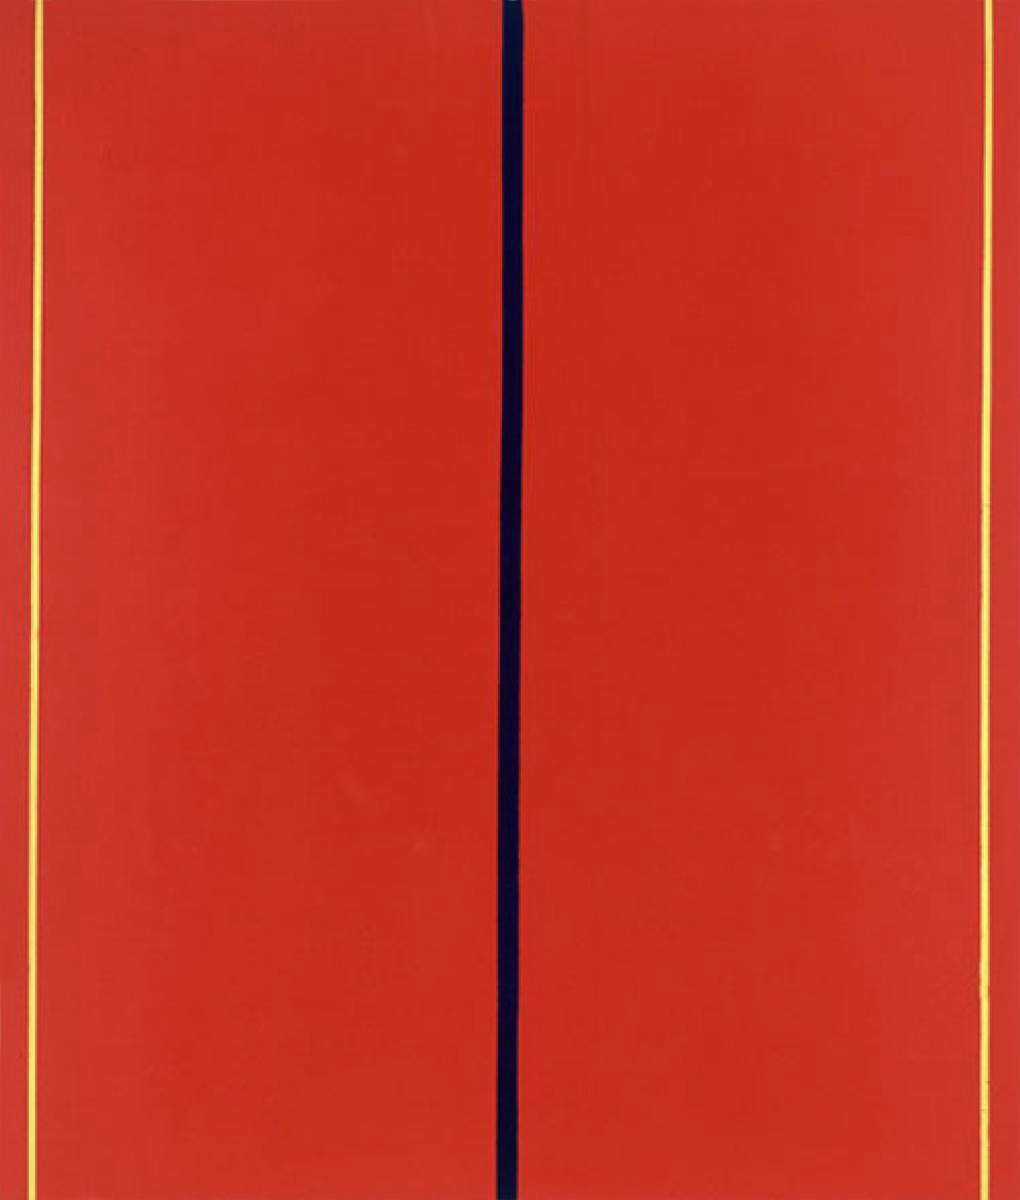 barnett newman Barnett newman (january 29, 1905 – july 4, 1970) was an american artist he is  seen as one of the major figures in abstract expressionism and one of the.